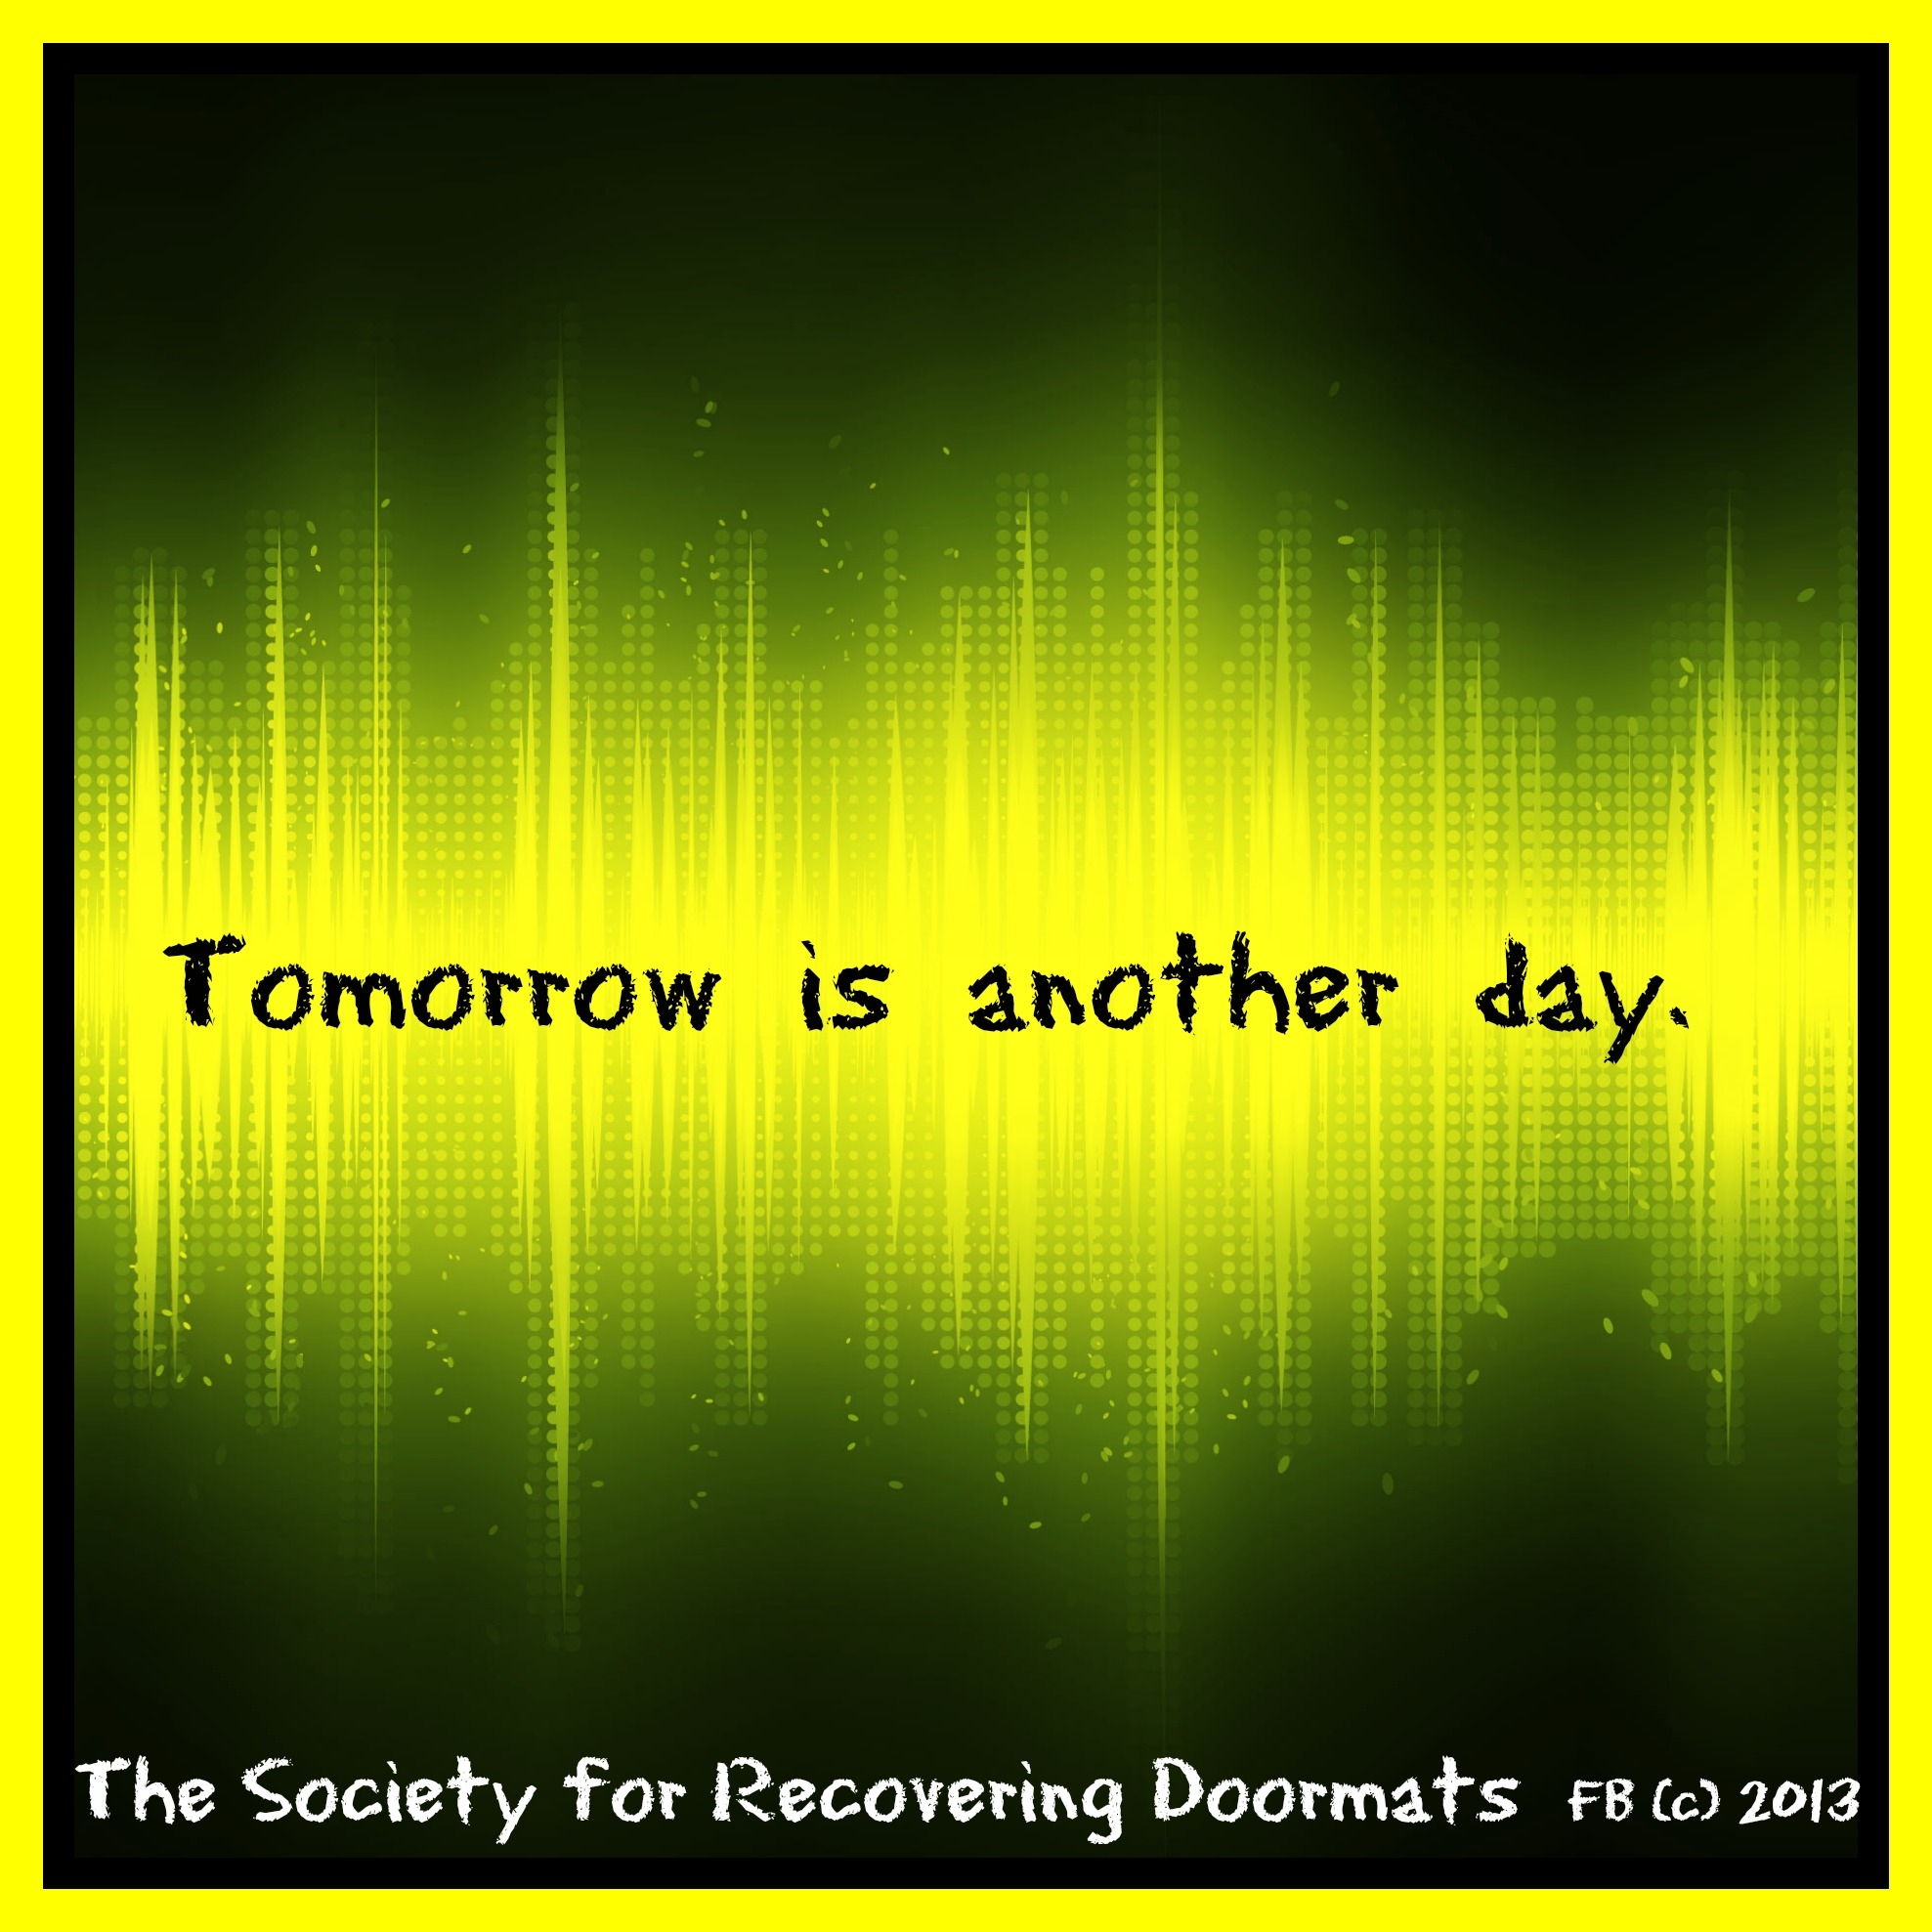 Tomorrow is another day.